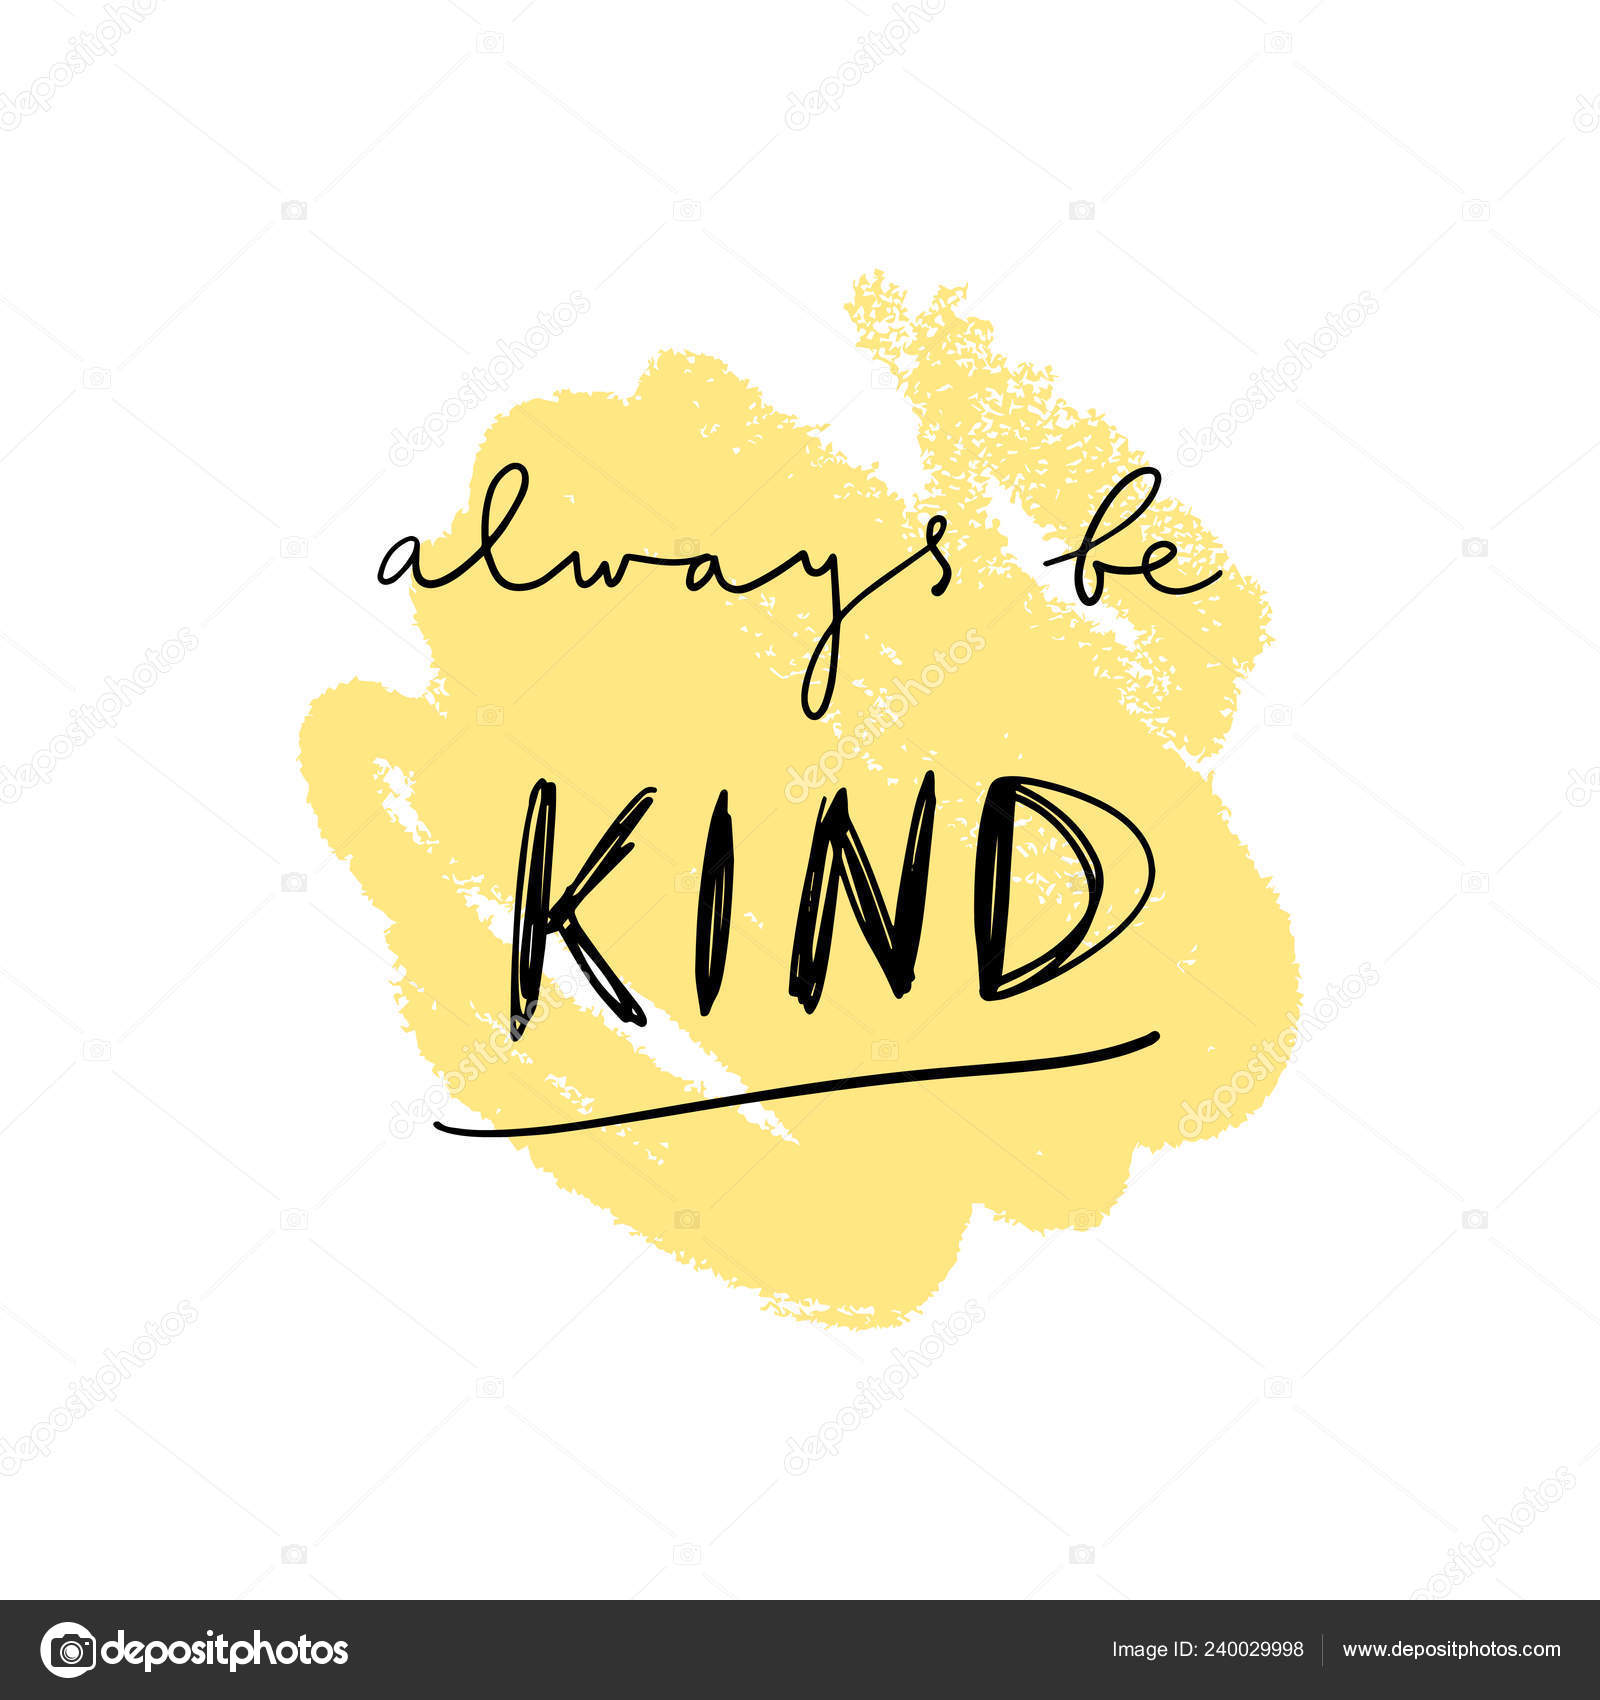 Clipart: be kind.